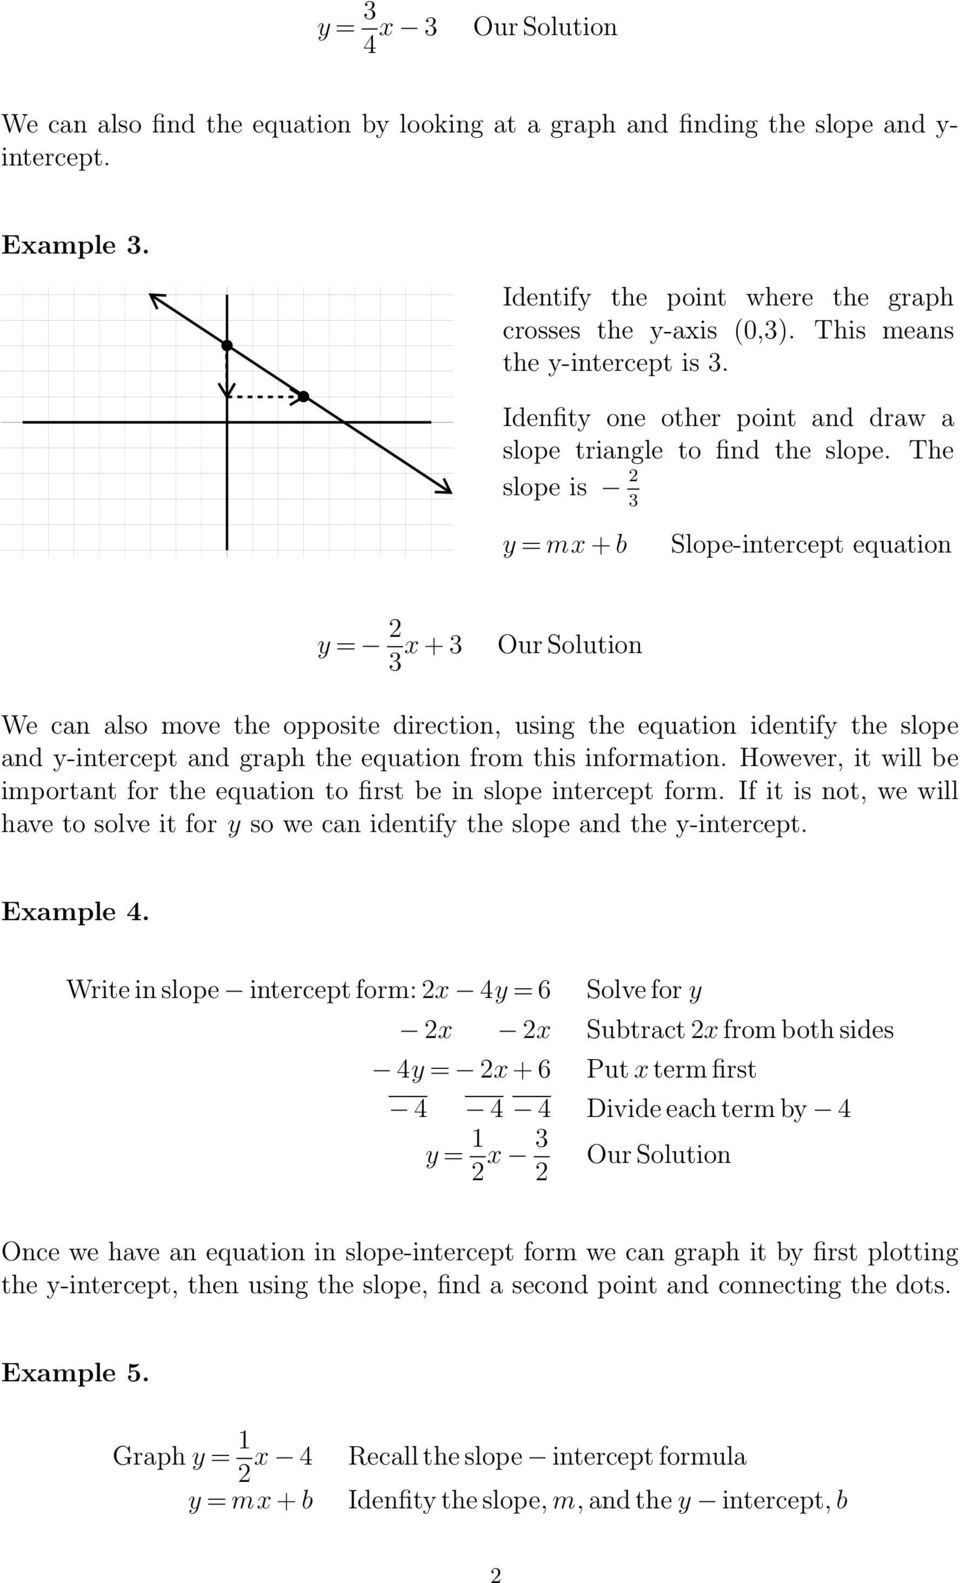 graphing - slope-intercept form - pdf